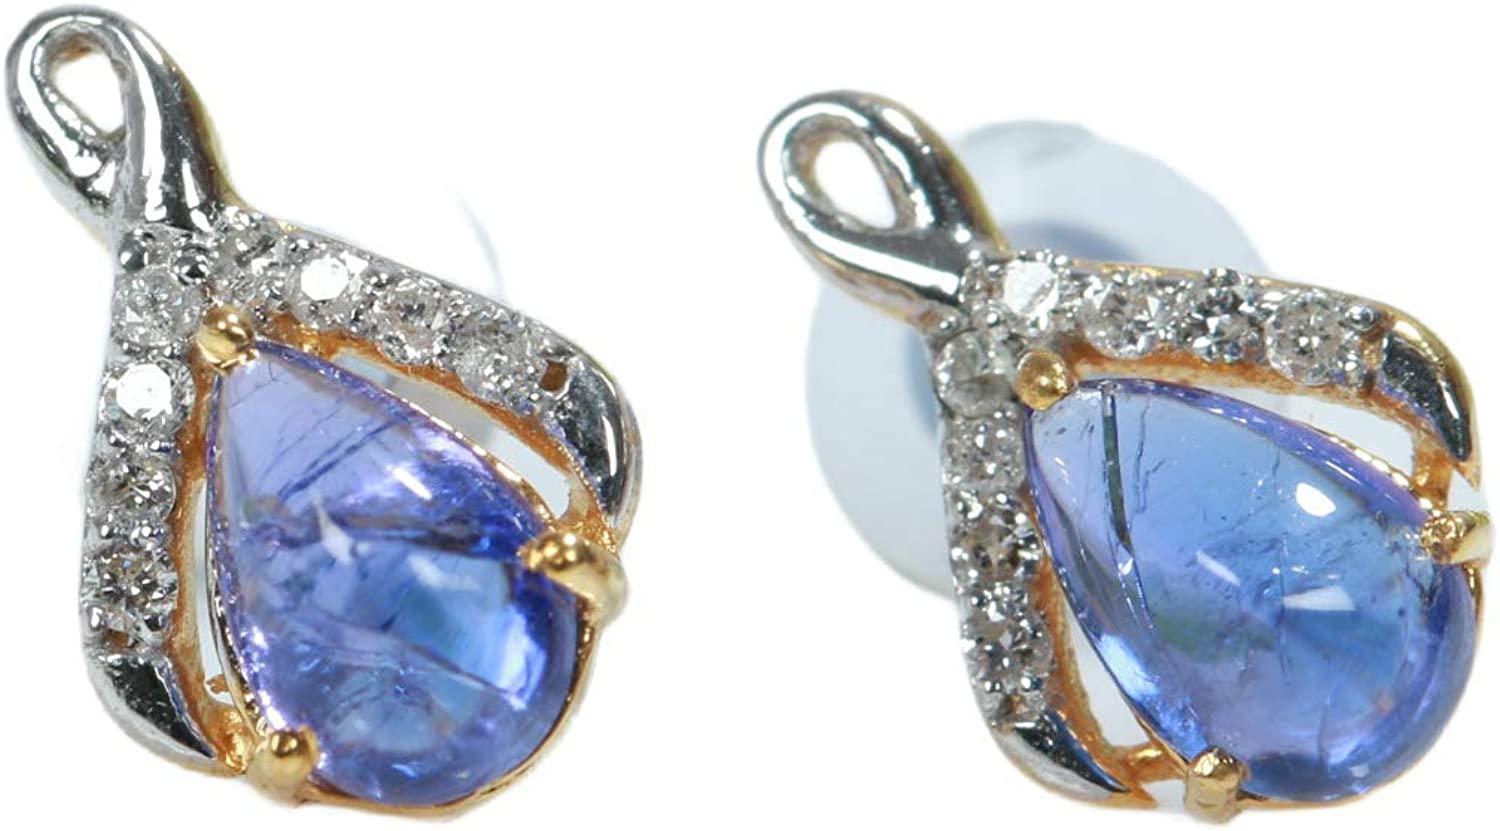 14k Gold Natural Tanzanite And Diamond Over Max 52% OFF item handling Earrings White Girl' Stud